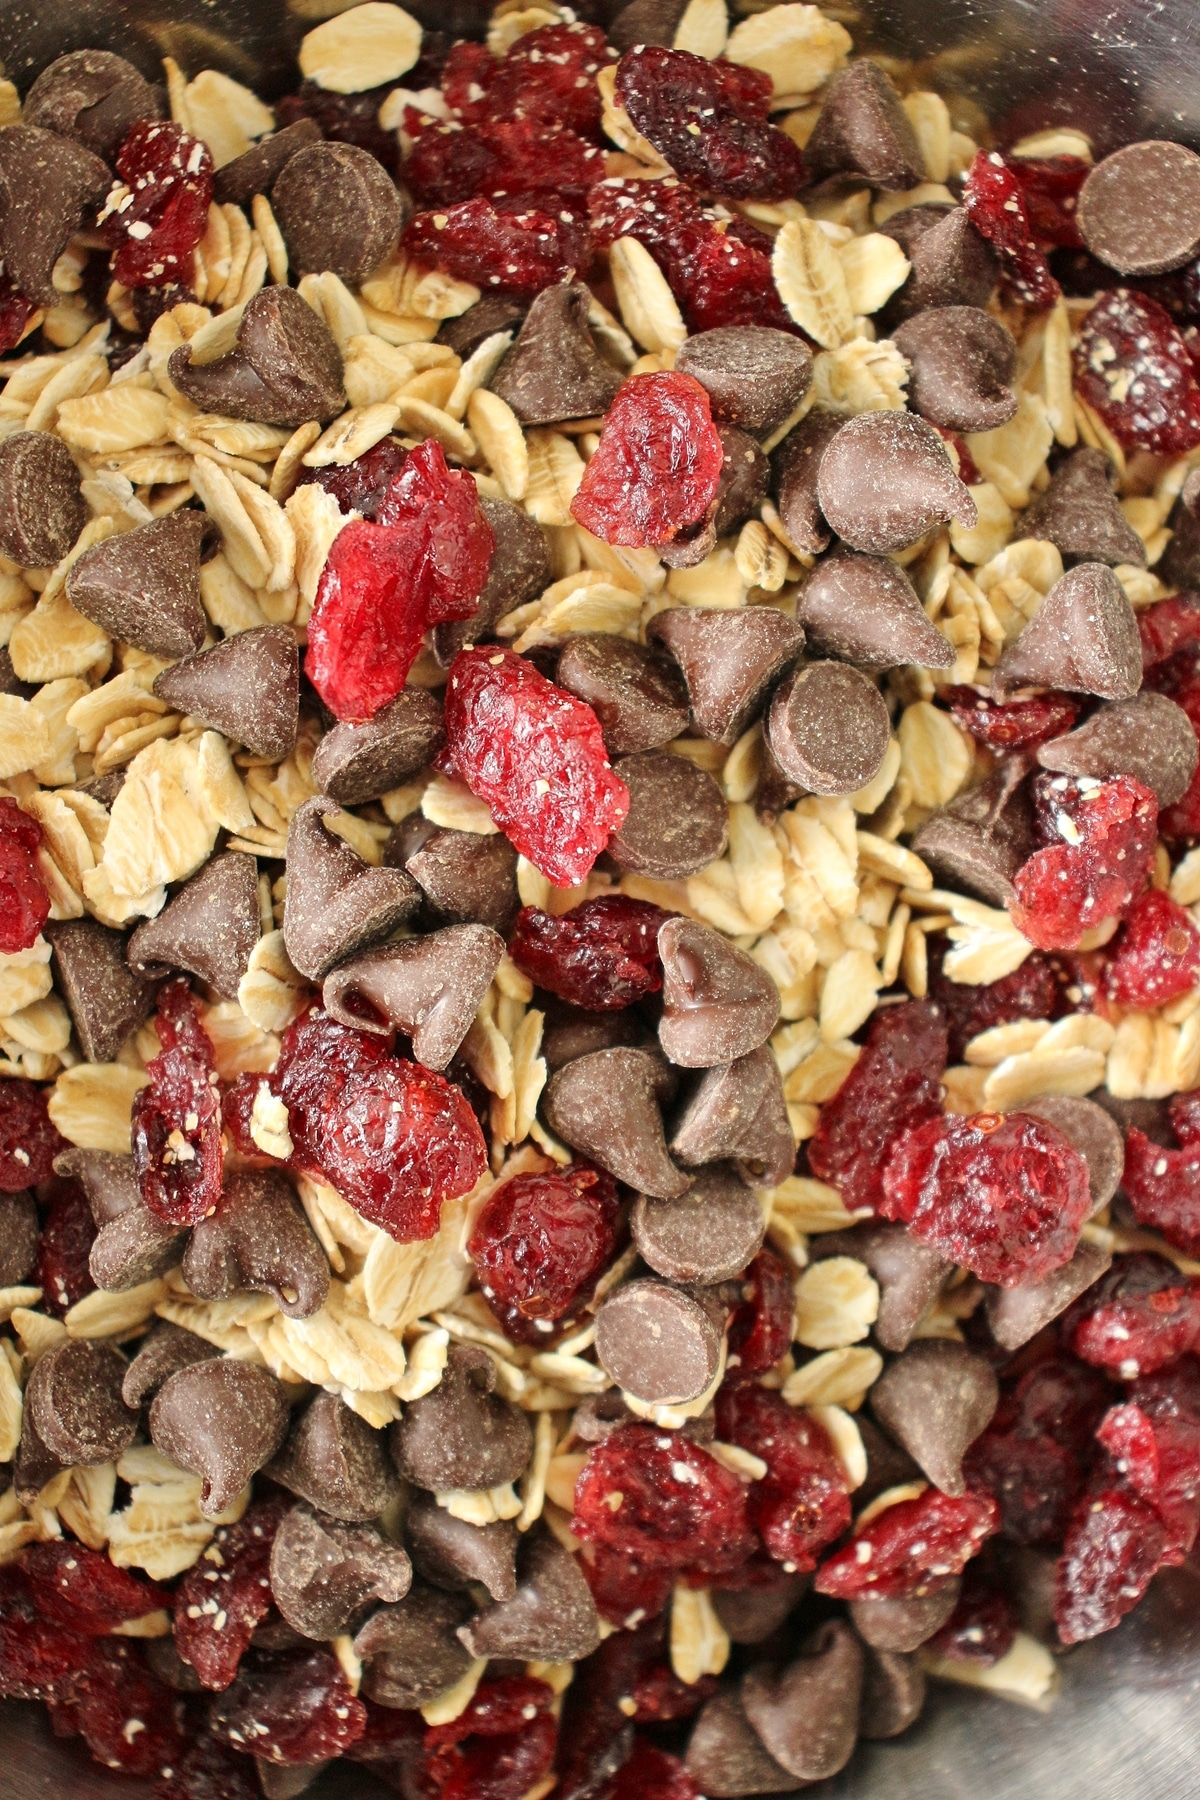 A combination of dried cranberries, chocolate chips, and oats in a mixing bowl.